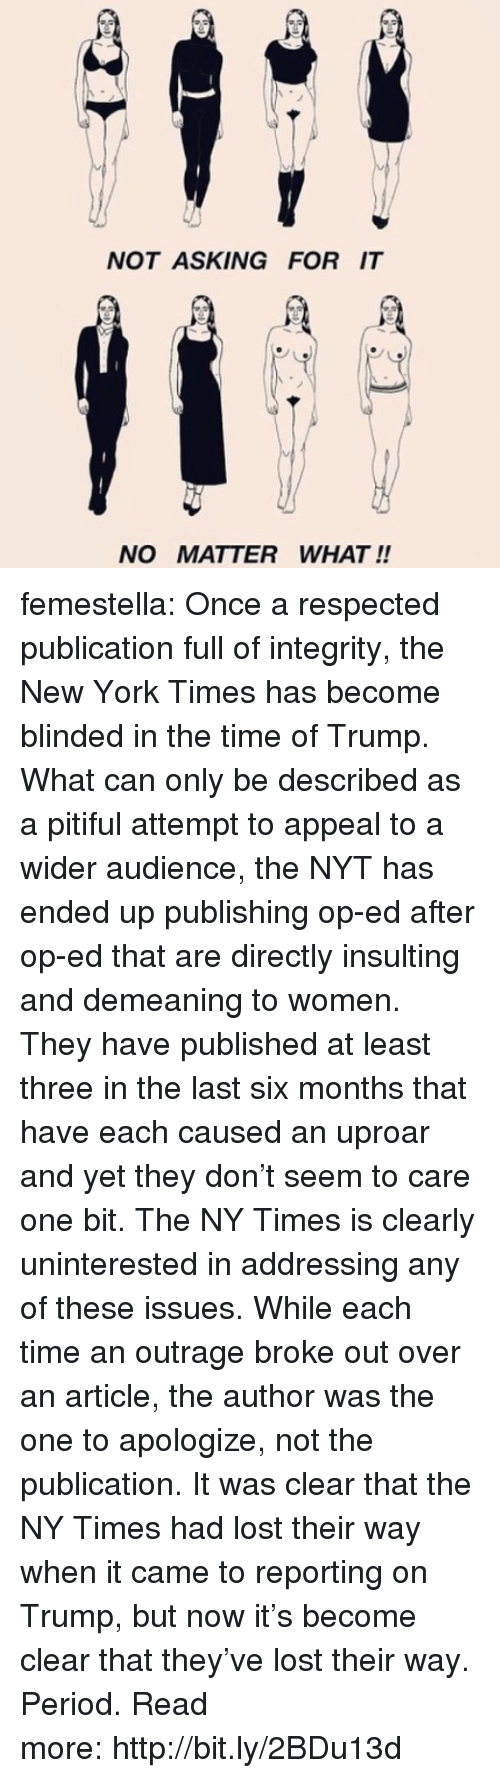 Pitiful: NOT ASKING FOR IT  NO MATTER WHAT !! femestella: Once a respected publication full of integrity, the New York Times has become blinded in the time of Trump. What can only be described as a pitiful attempt to appeal to a wider audience, the NYT has ended up publishing op-ed after op-ed that are directly insulting and demeaning to women. They have published at least three in the last six months that have each caused an uproar and yet they don't seem to care one bit. The NY Times is clearly uninterested in addressing any of these issues. While each time an outrage broke out over an article, the author was the one to apologize, not the publication. It was clear that the NY Times had lost their way when it came to reporting on Trump, but now it's become clear that they've lost their way. Period. Read more:http://bit.ly/2BDu13d